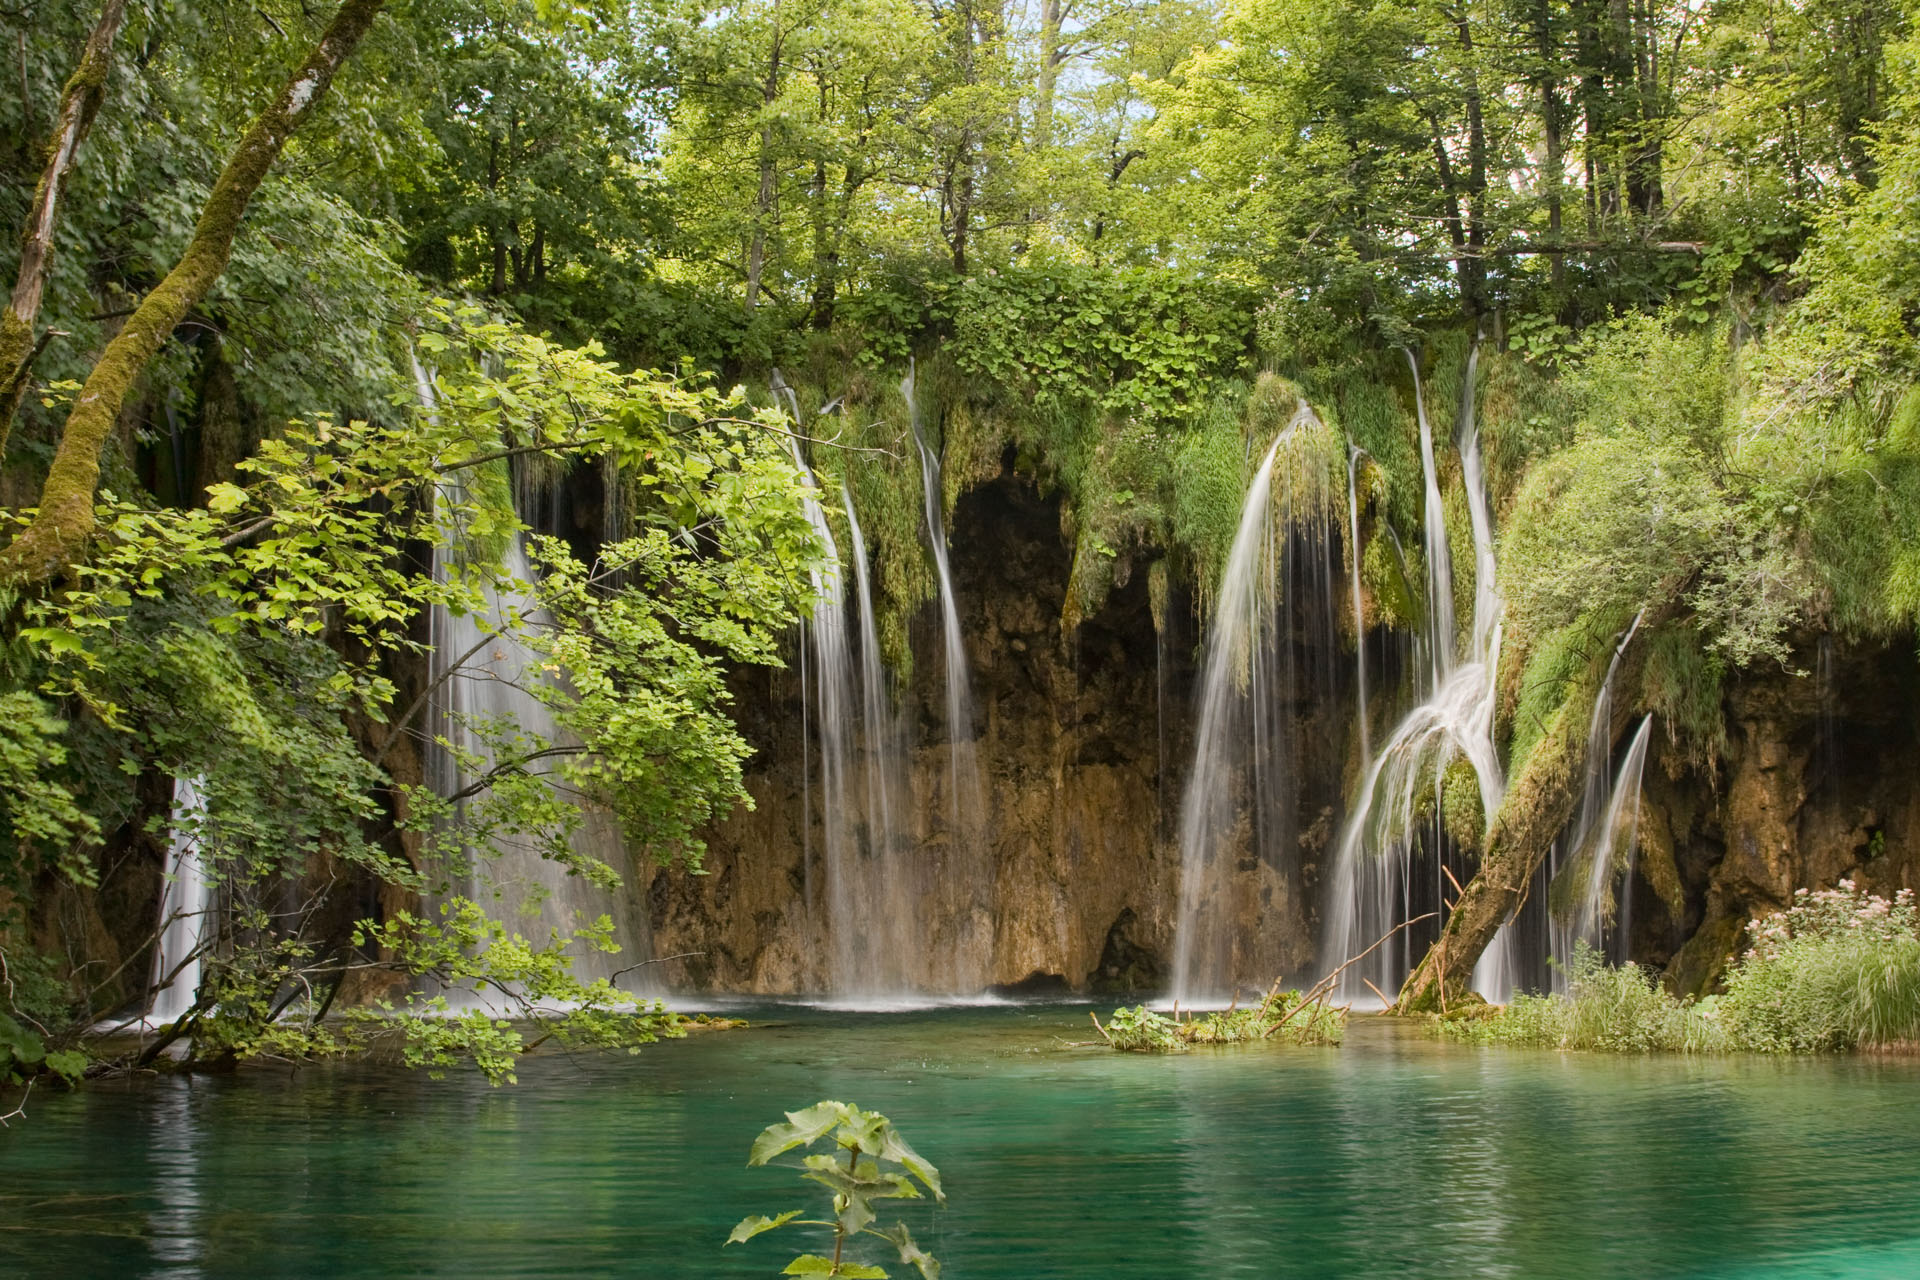 Cascate di Plitvice - Waterfall in Plitvice National Park